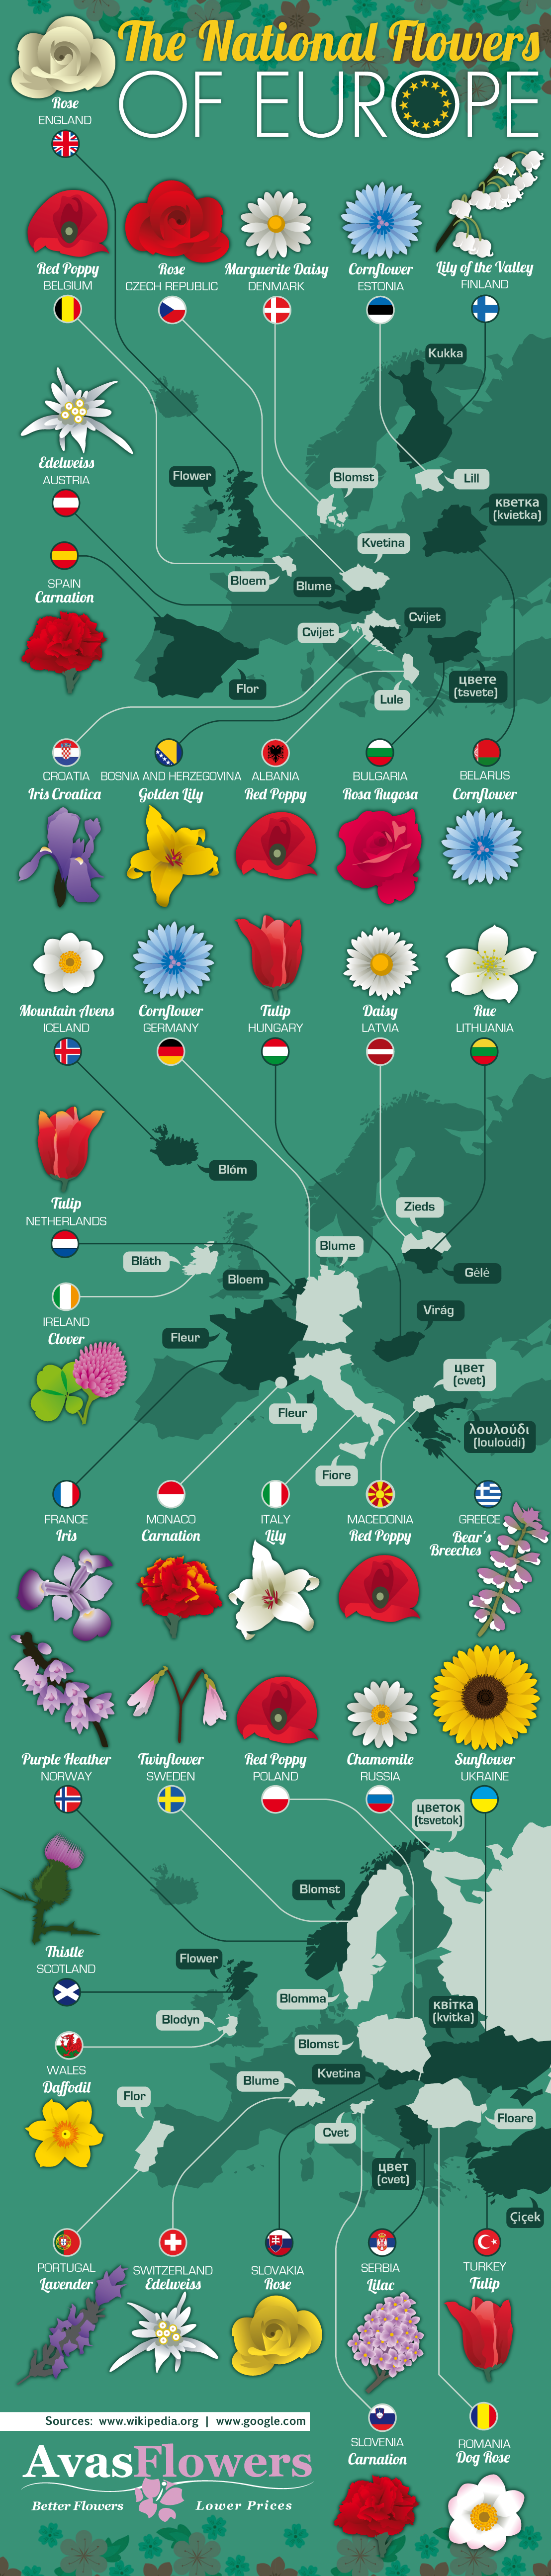 Flowers That Represent European Nations [Infographic]